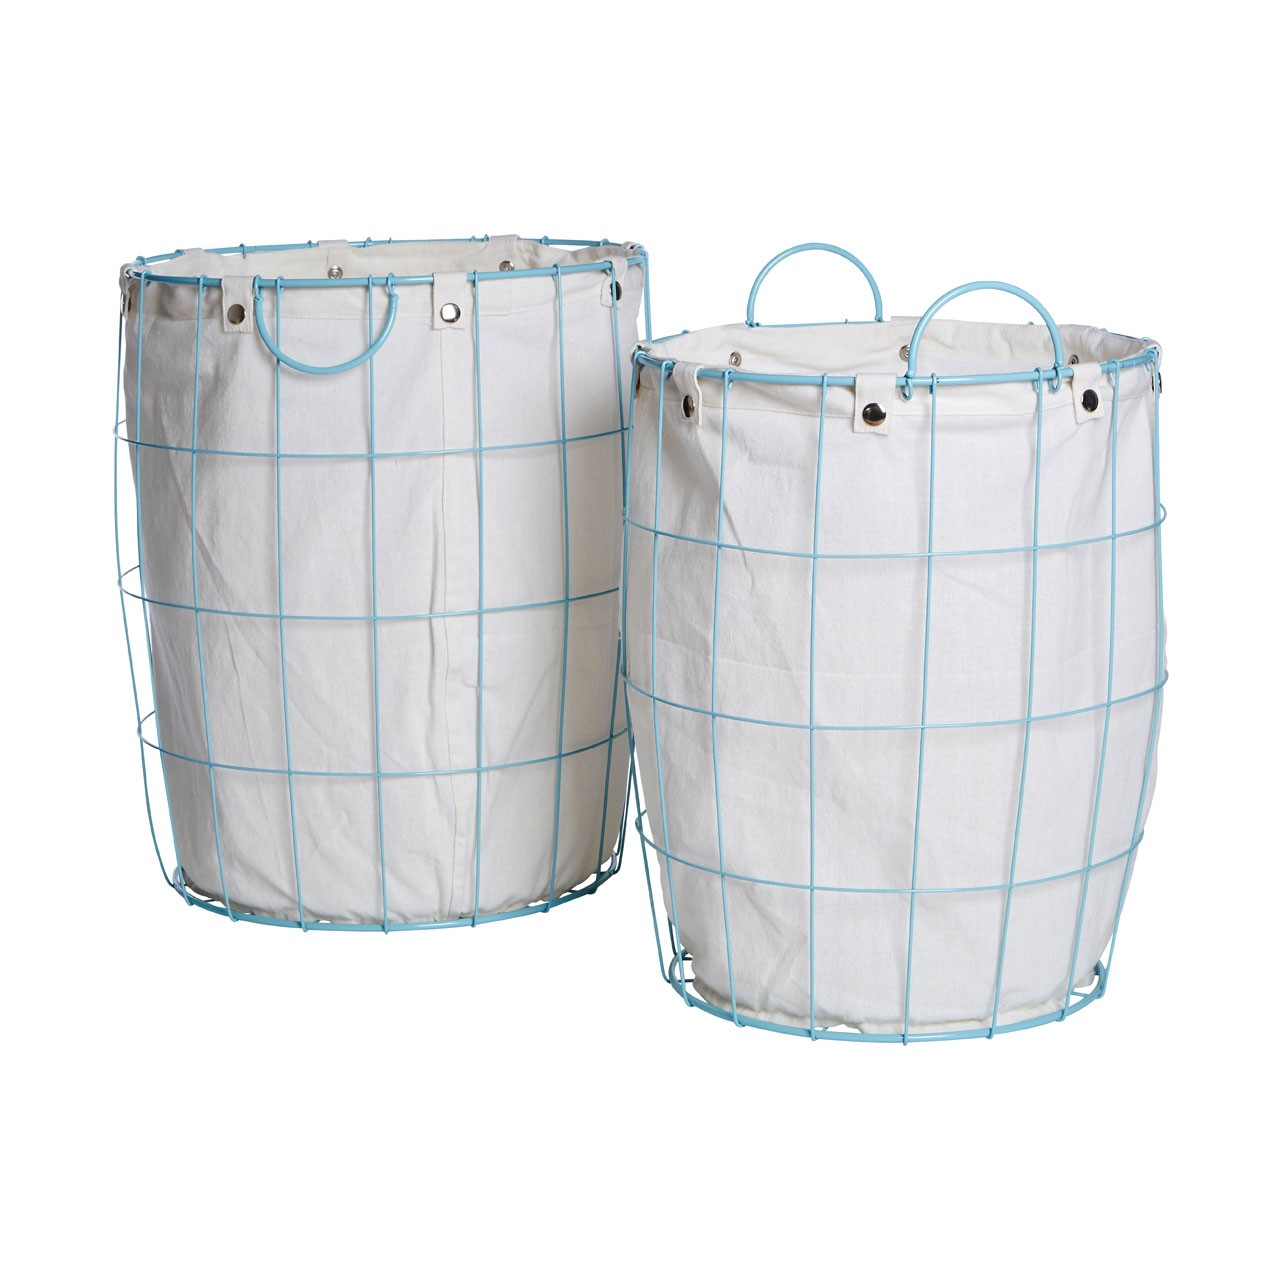 Prime Furnishing Round Blue Wire Laundry Baskets - Set of 2